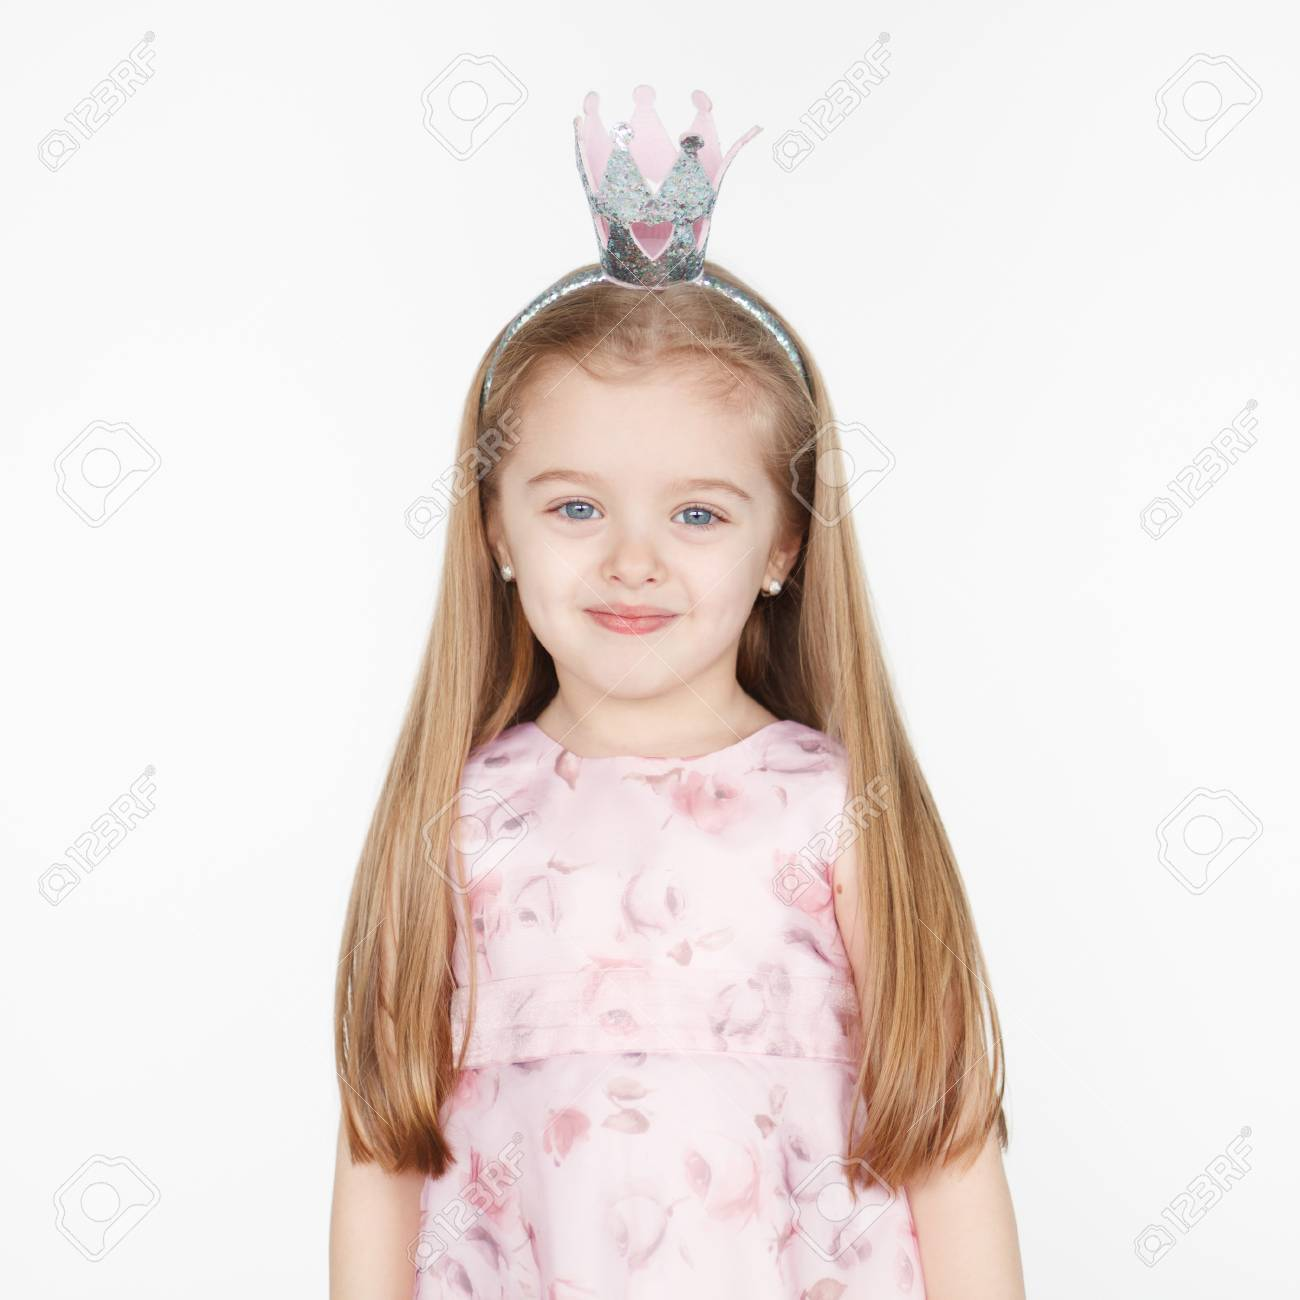 Square Portrait Of Cute Smiling Little Blond Girl In Princess